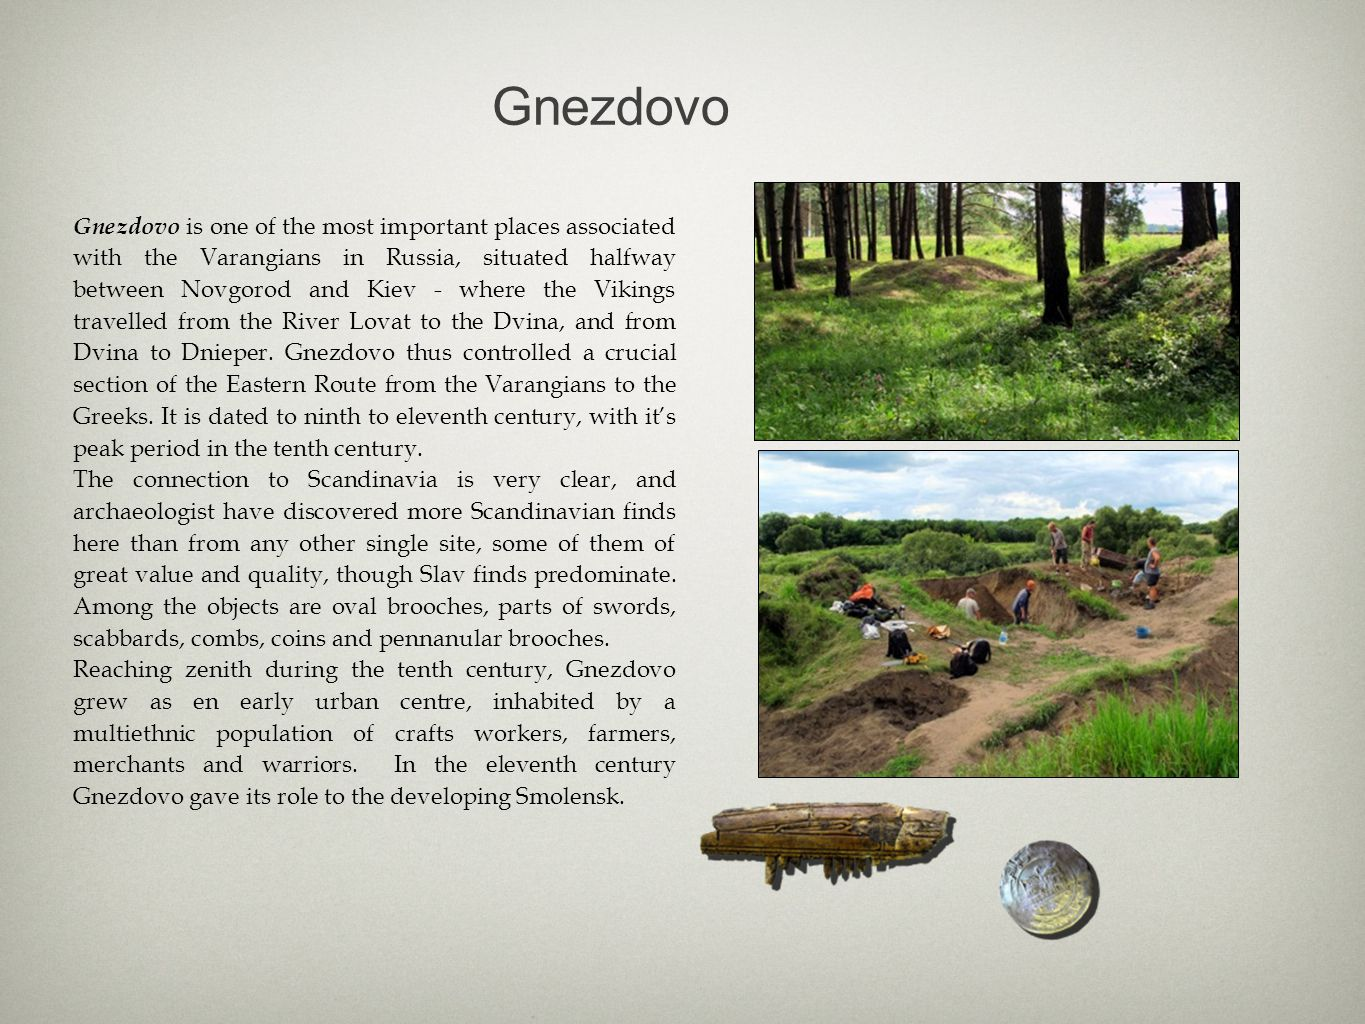 Gnezdovo Gnezdovo is one of the most important places associated with the Varangians in Russia, situated halfway between Novgorod and Kiev - where the Vikings travelled from the River Lovat to the Dvina, and from Dvina to Dnieper.